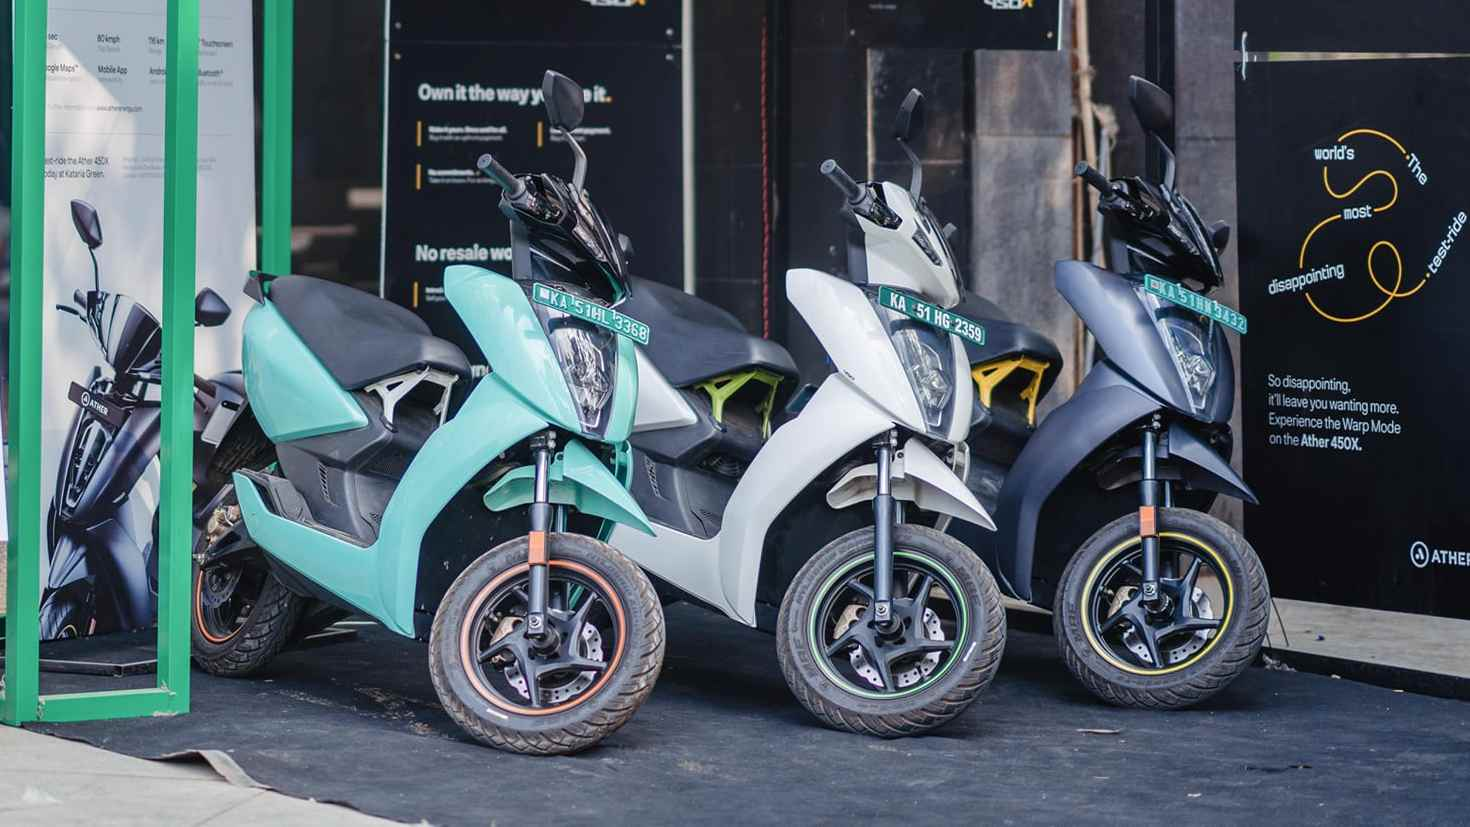 Women now account for 25 percent of all Ather Energy scooter buyers. Image: Ather Energy